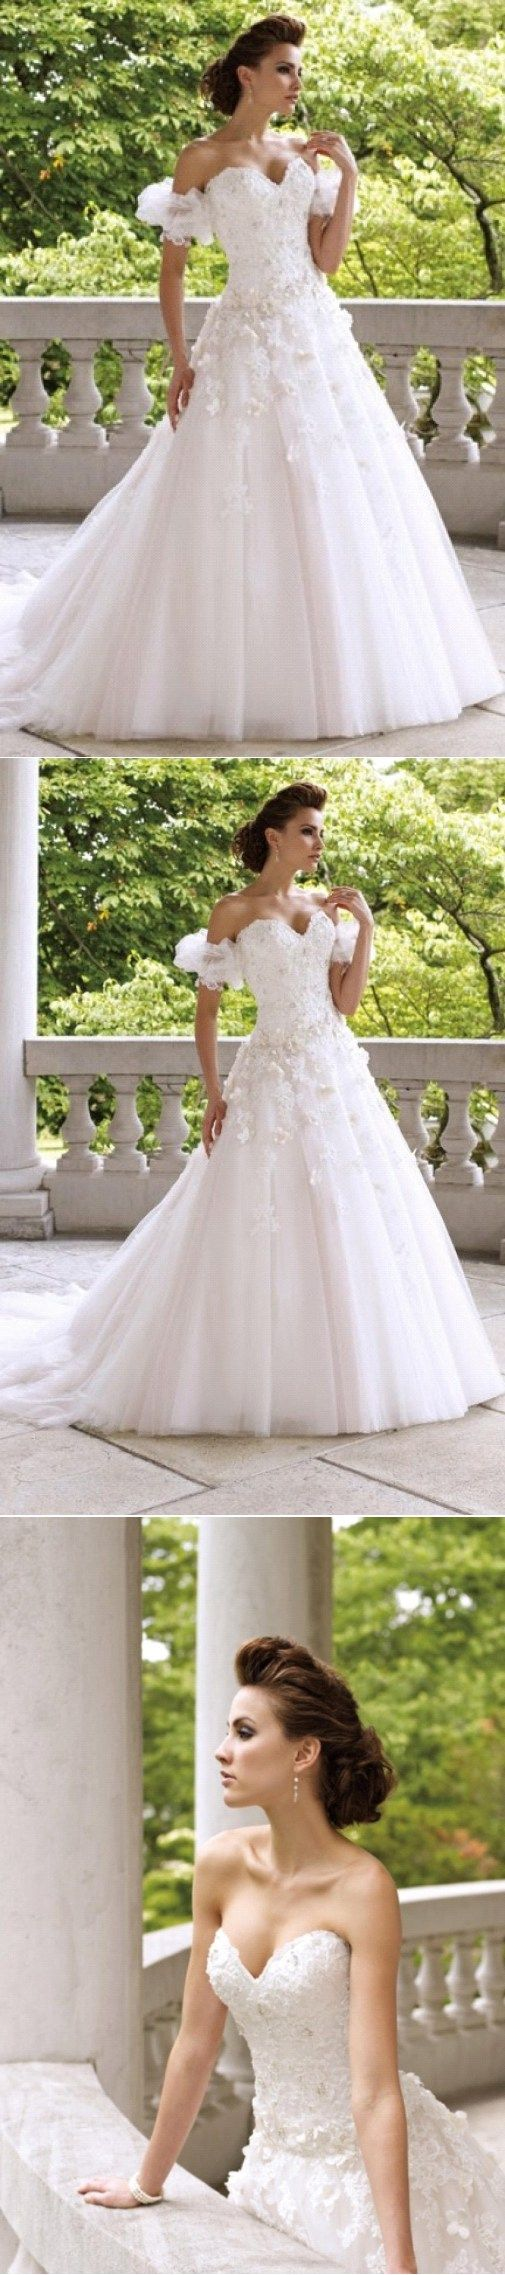 """Full Figured Laid-back A Wedding Dress Wedding Dresses Beachy Curvy V Neck Tiered Belts Girly Sexy Back """"A Wedding Dress Lengthy Sleeve, Hassle-free Wedding Gowns Beneath 80"""" Lace Up Polyester Convertible Bridesmaid Belts Pear Shaped Bodies Appliques Amazing Sleeveless Mini Strapless Puffy Mature Wedding Gown Vows Striped Small Bust V Neck."""